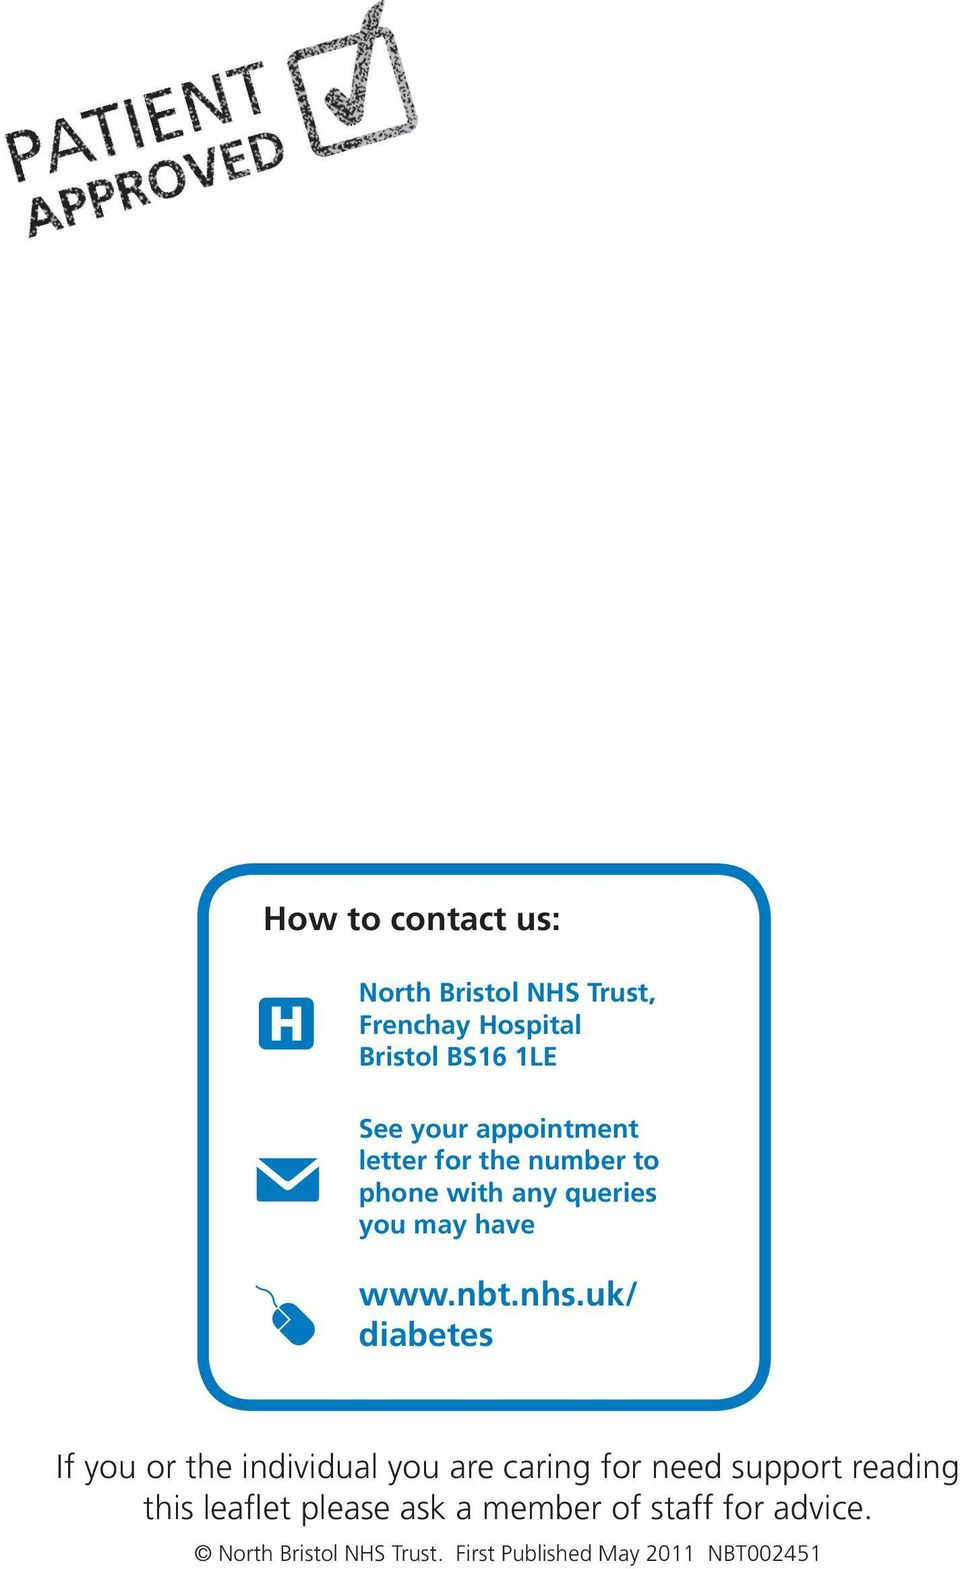 uk/ diabetes H If you or the individual you are caring for need support reading this leaflet